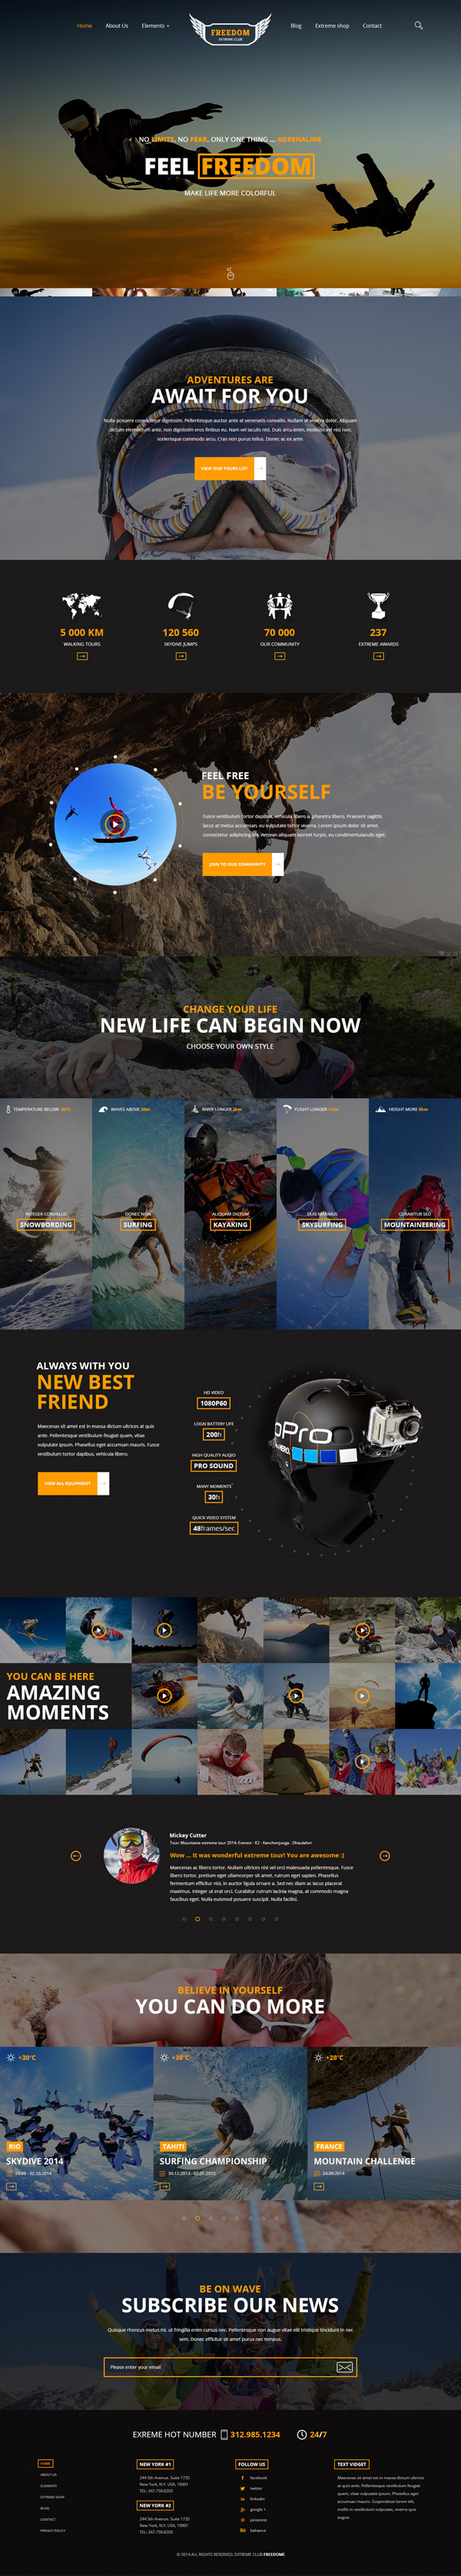 Freedom Extreme Club - Powerful HTML Template